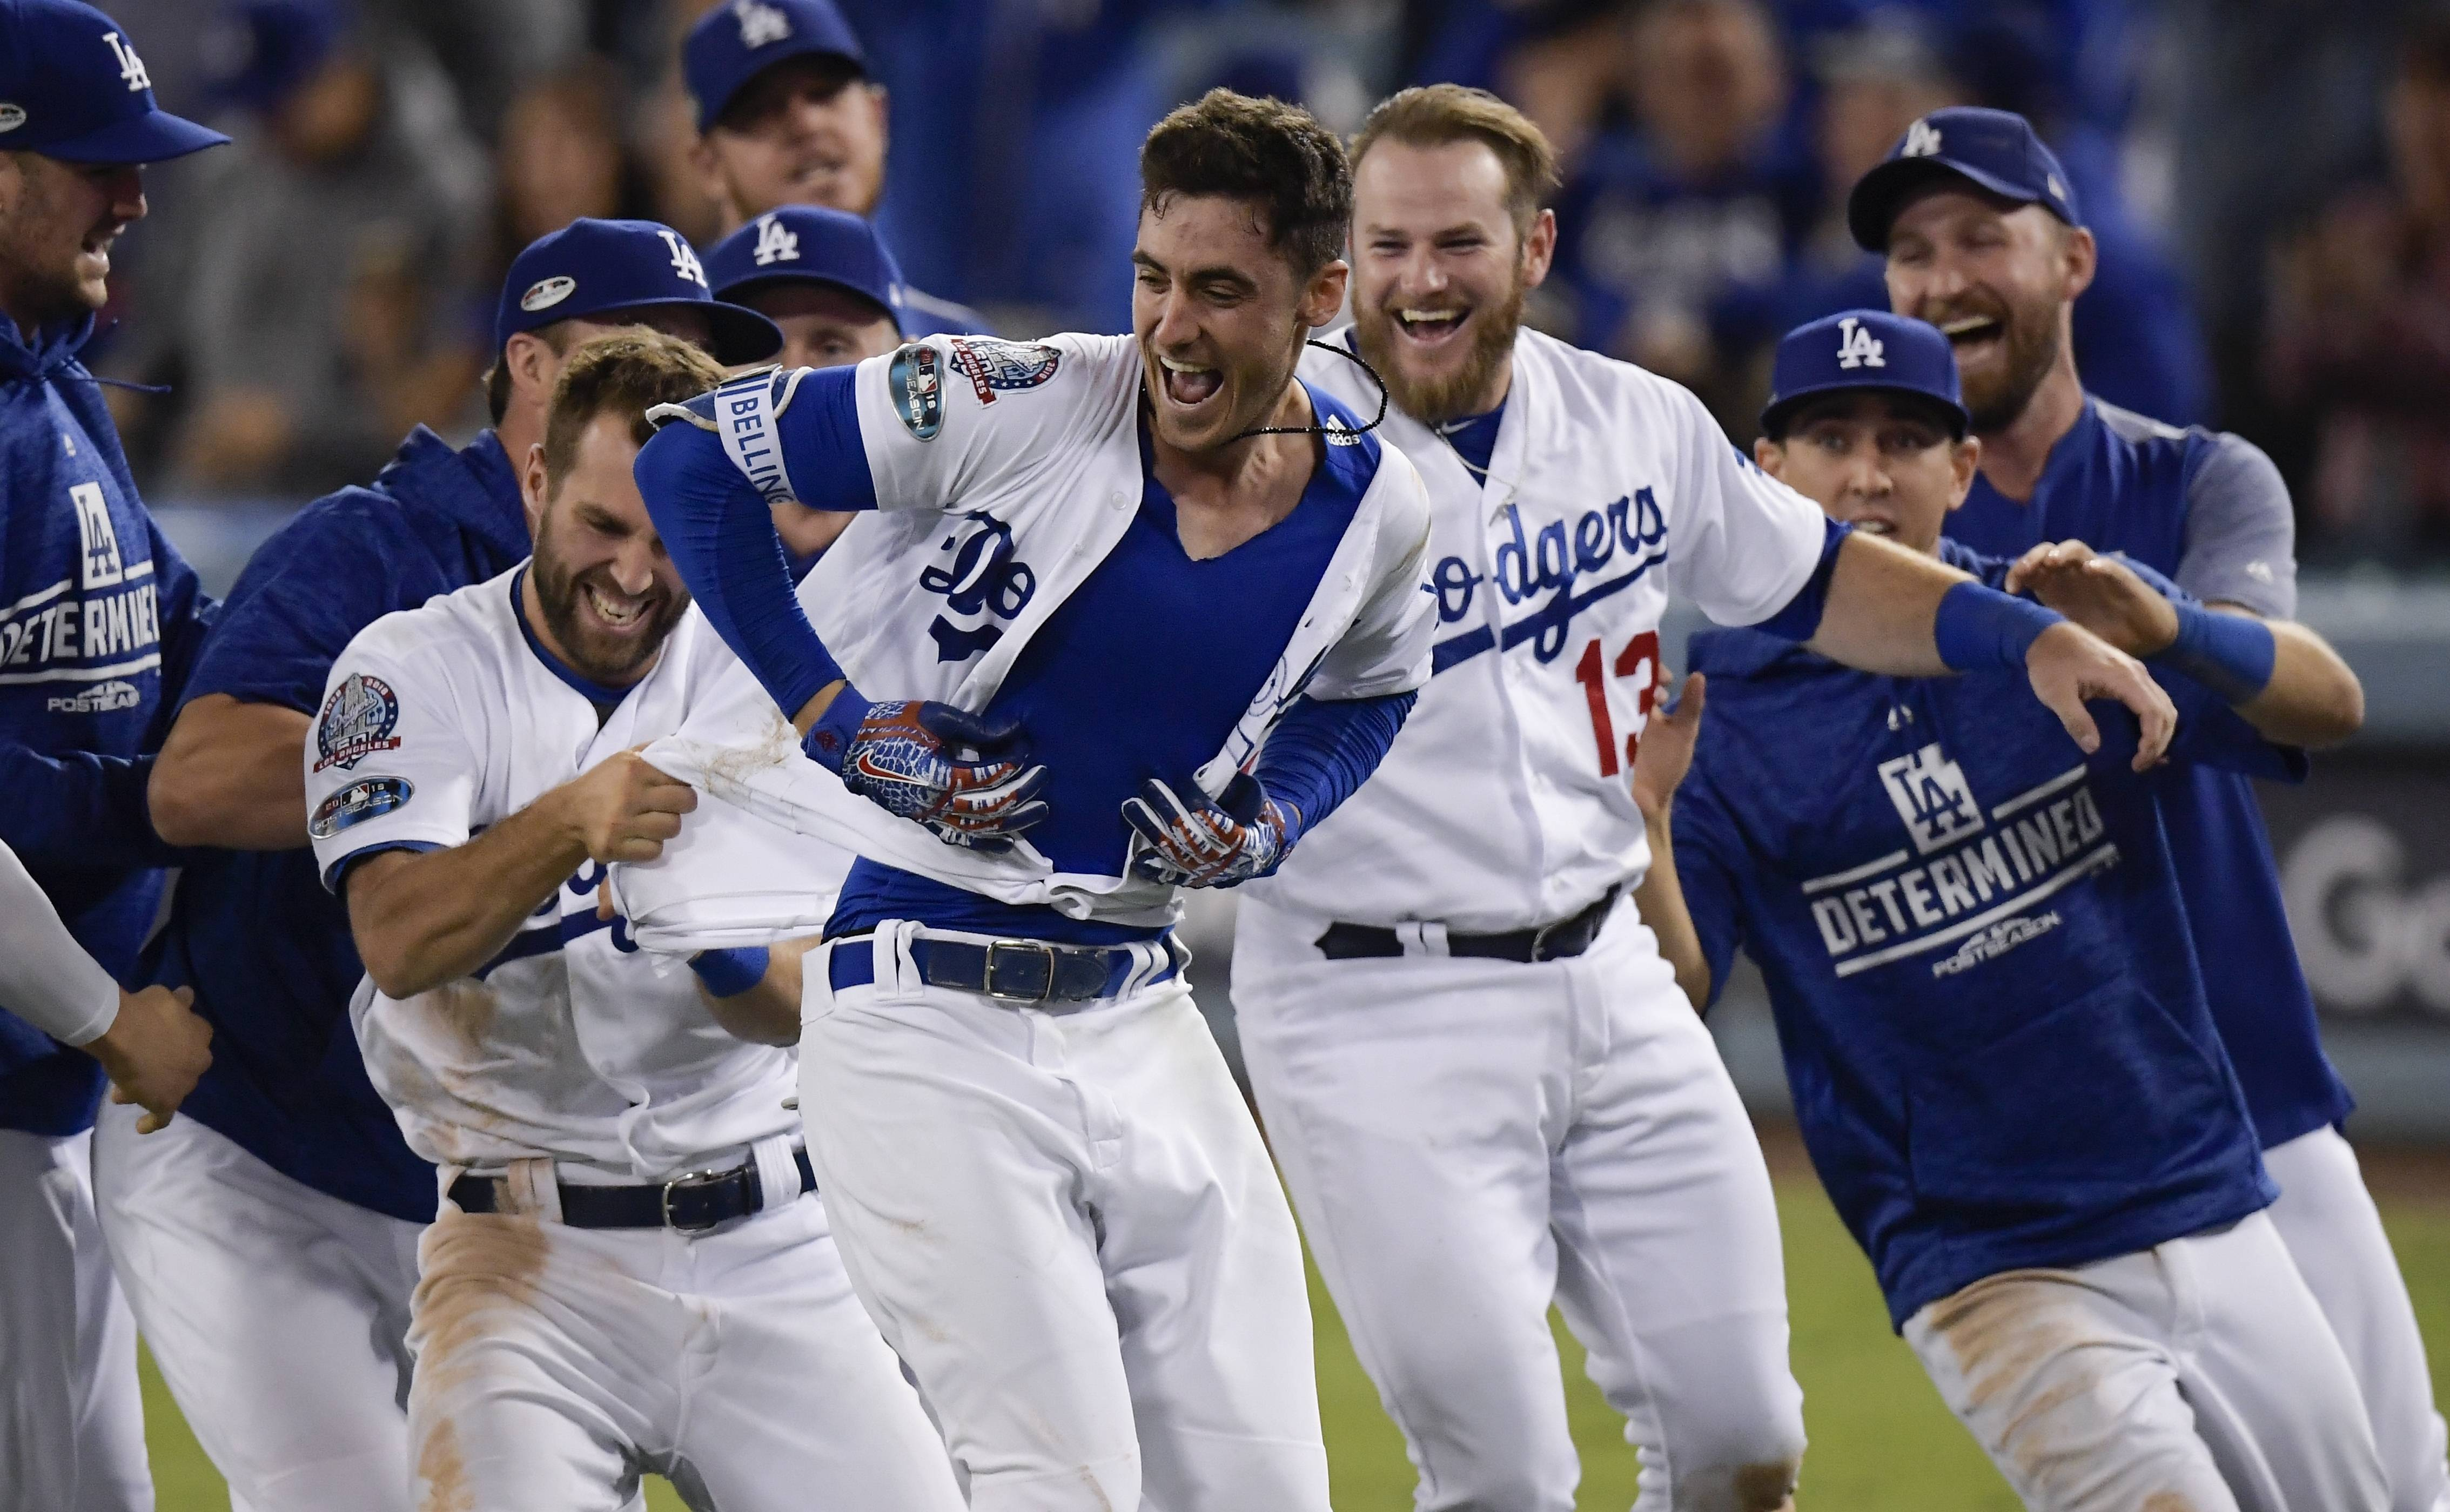 Los Angeles Dodgers' Cody Bellinger reacts after hitting a walk-off hit during the 13th inning of Game 4 of the National League Championship Series baseball game against the Milwaukee Brewers Tuesday, Oct. 16, 2018, in Los Angeles. The Dodgers won 2-1 to tie the series at 2-2. (AP Photo/Mark J. Terrill)